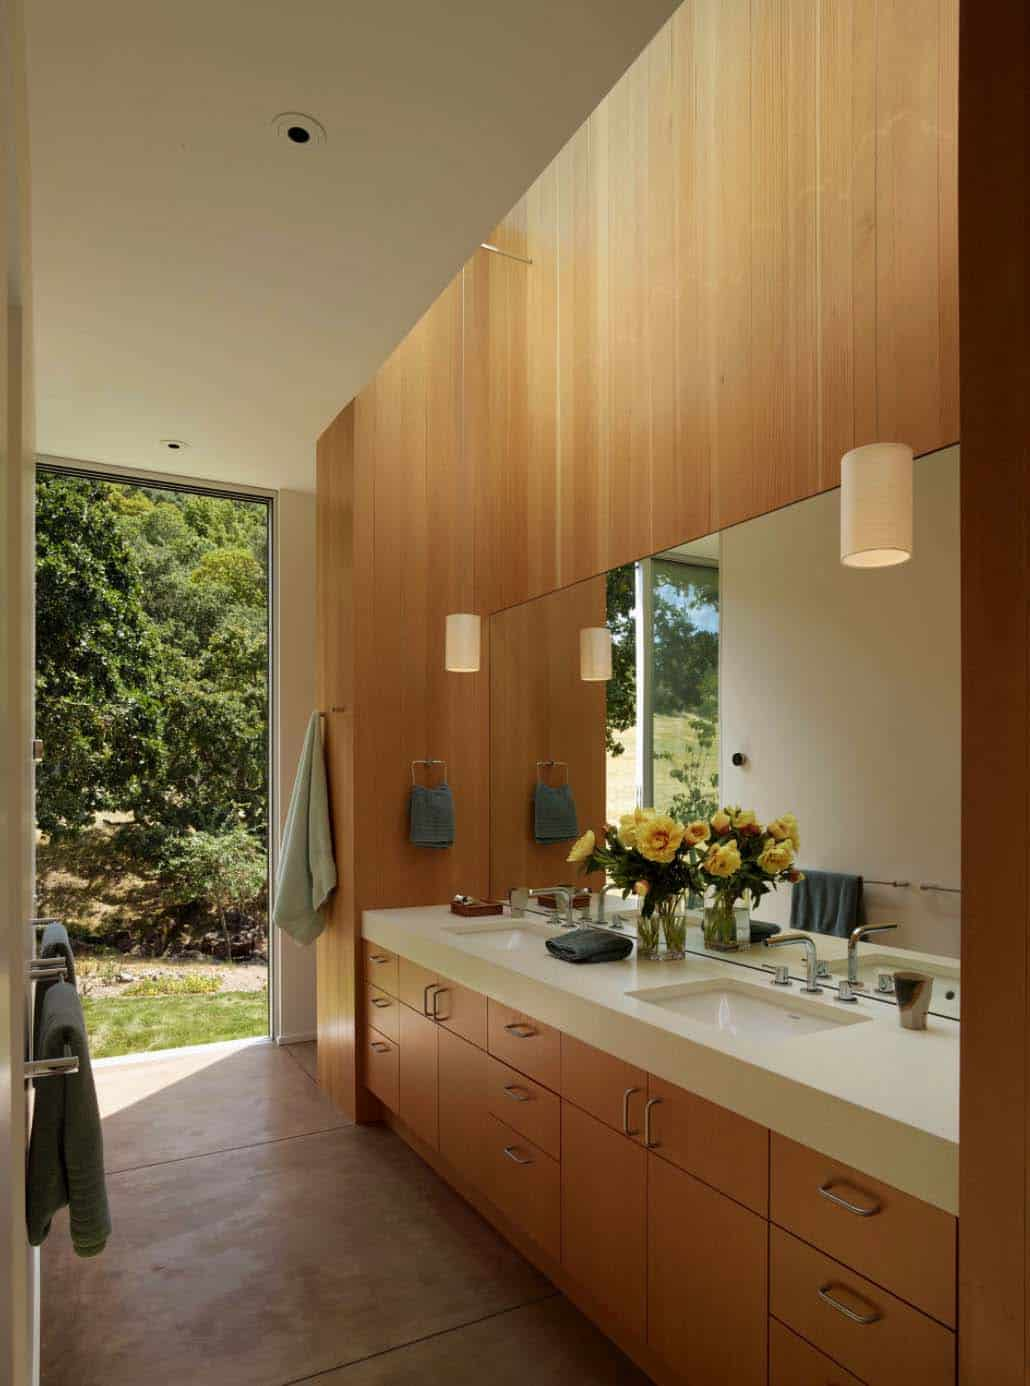 contemporary-house-design-turnbull-griffin-haesloop-10-1-kindesign